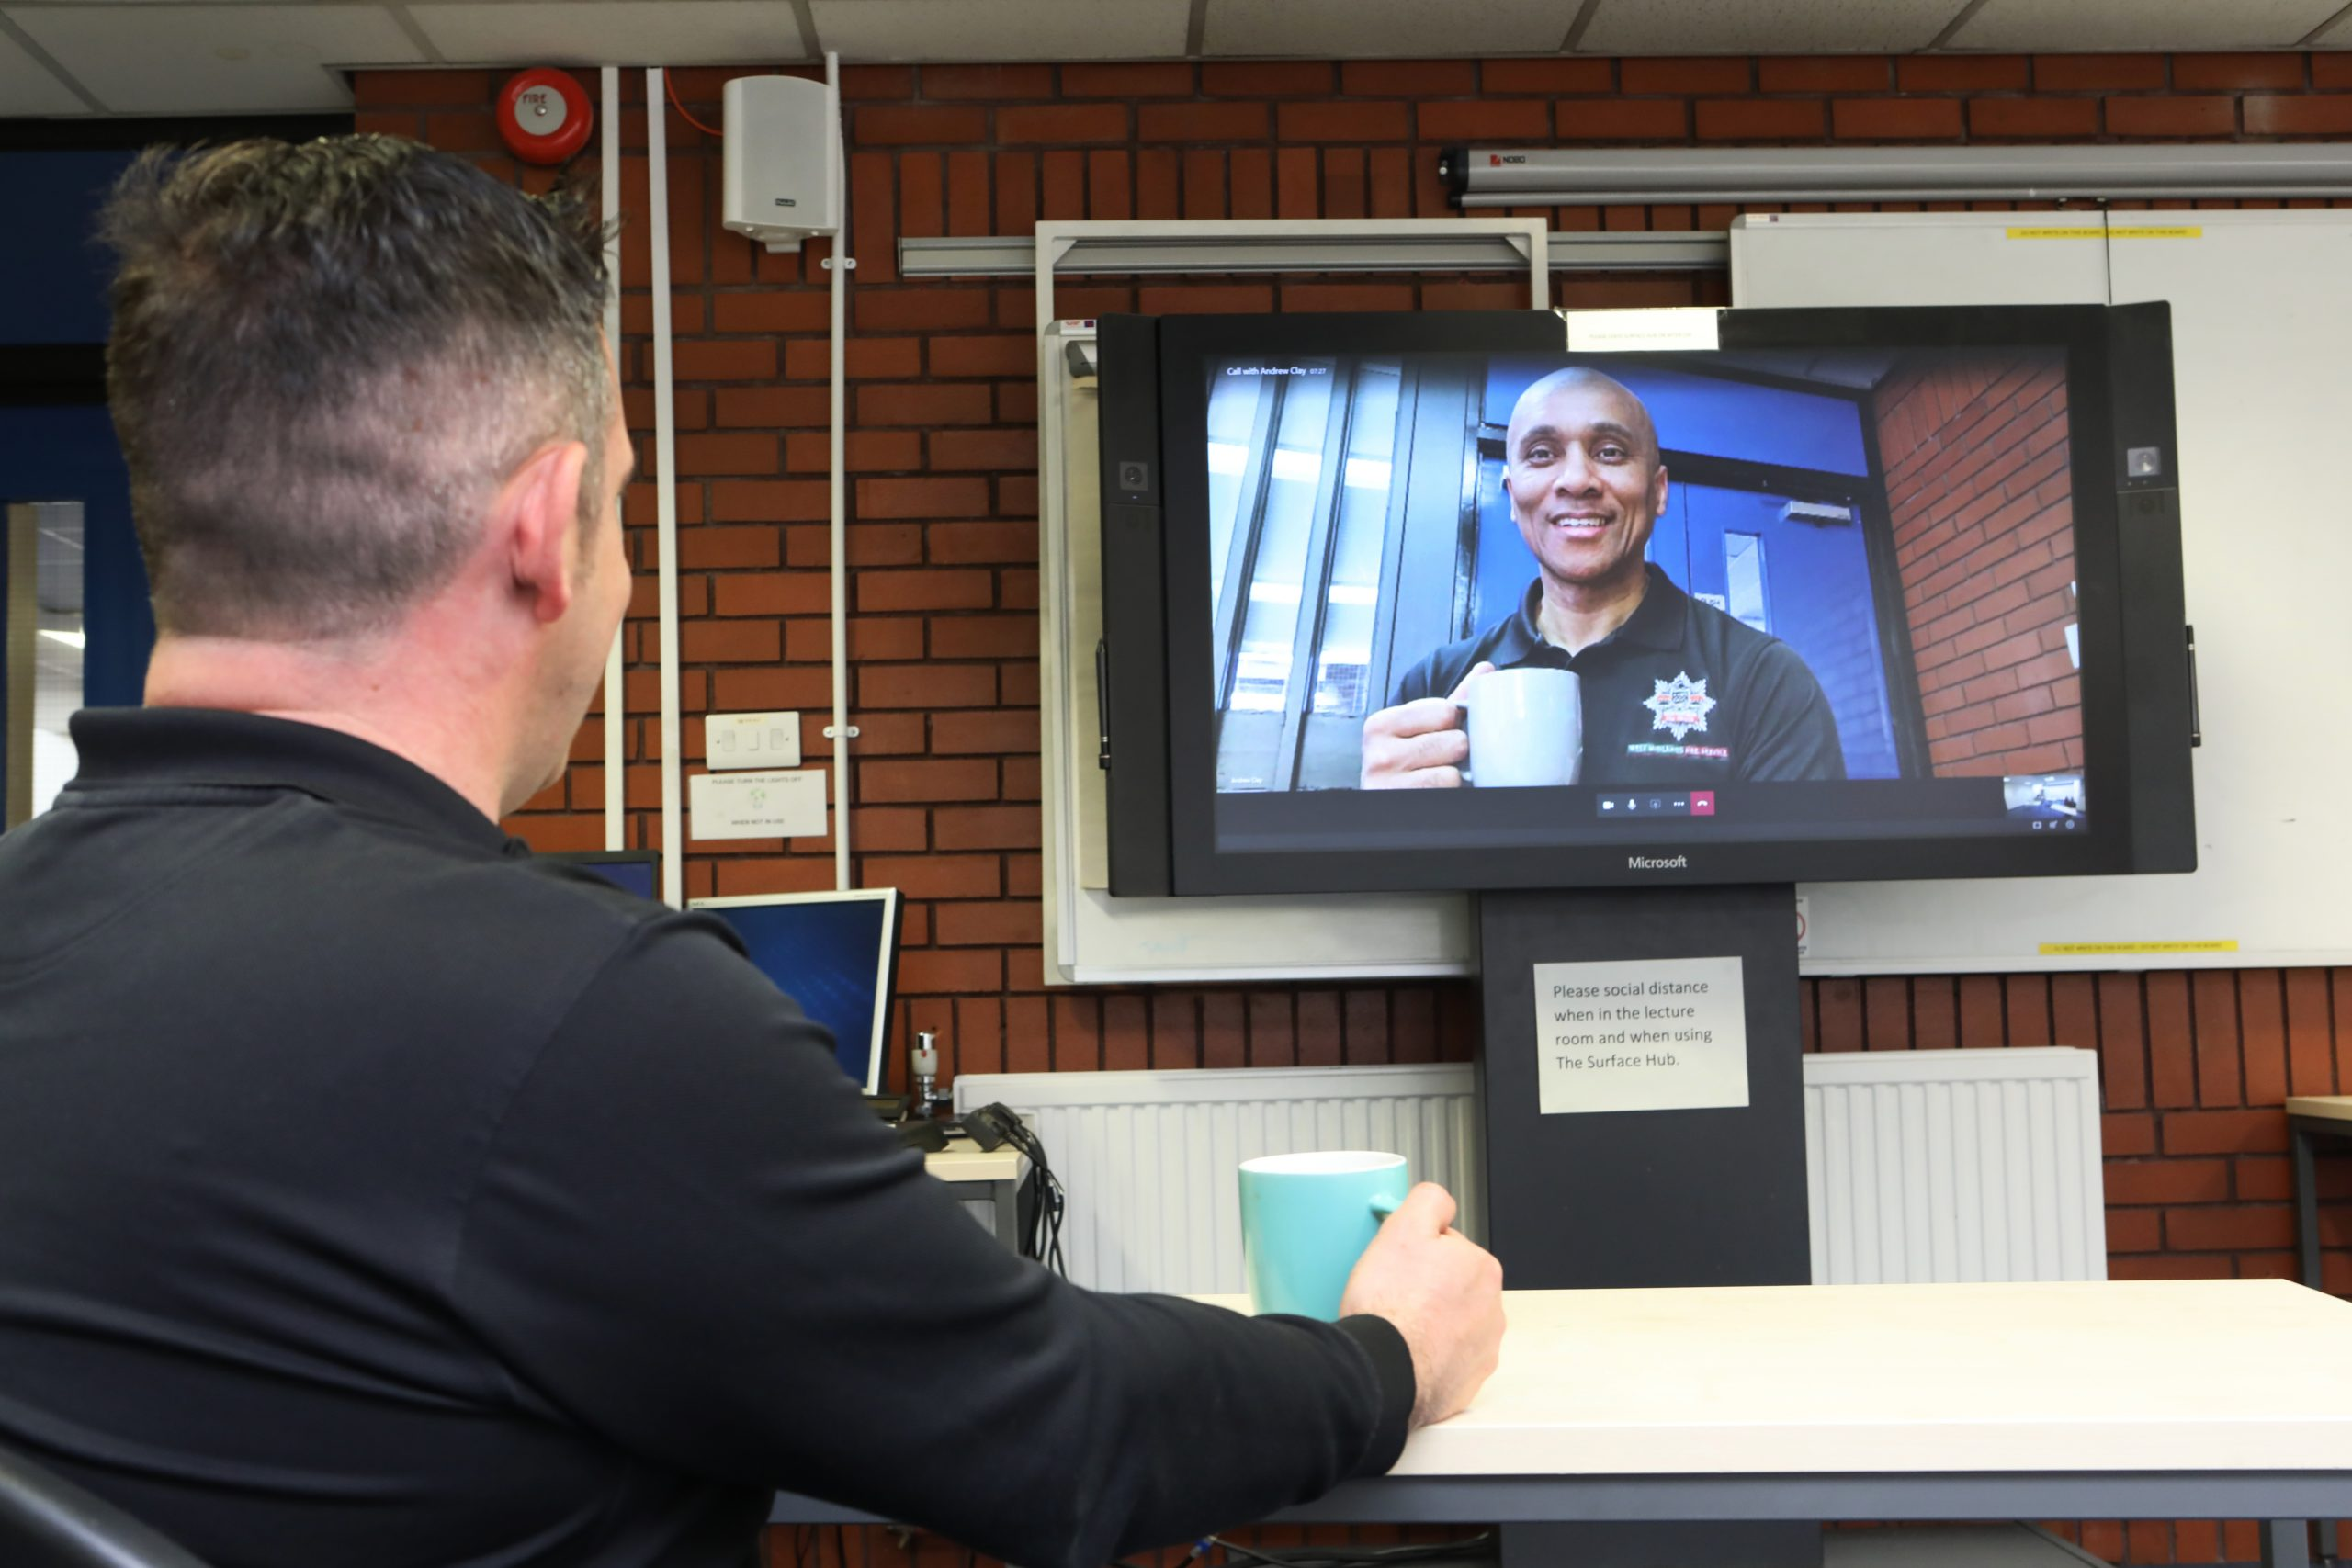 WMFS Firefighter on video call – Brew with a crew